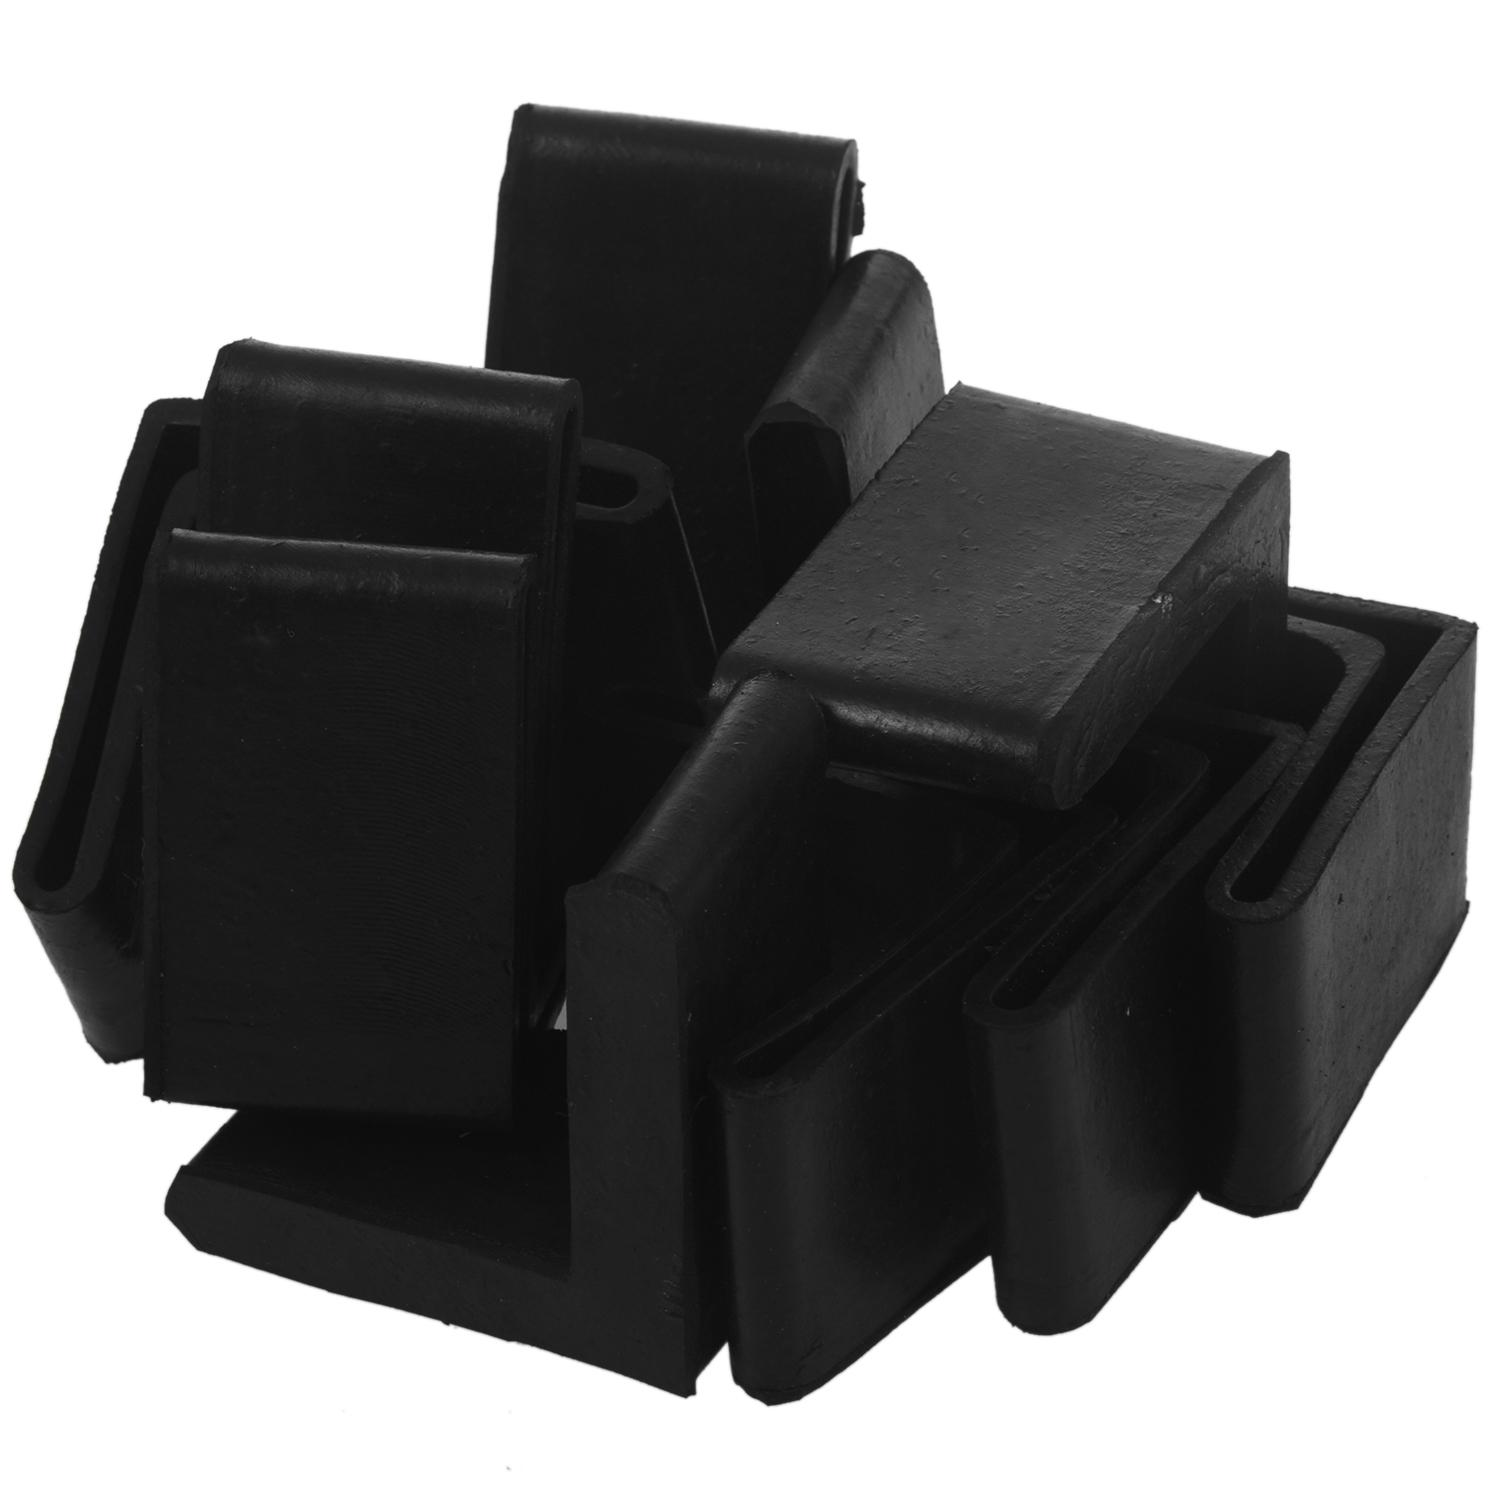 Promotion! 10 Pcs 50mm X 50mm Black L Shaped Furniture Angle Rubber Foot Covers